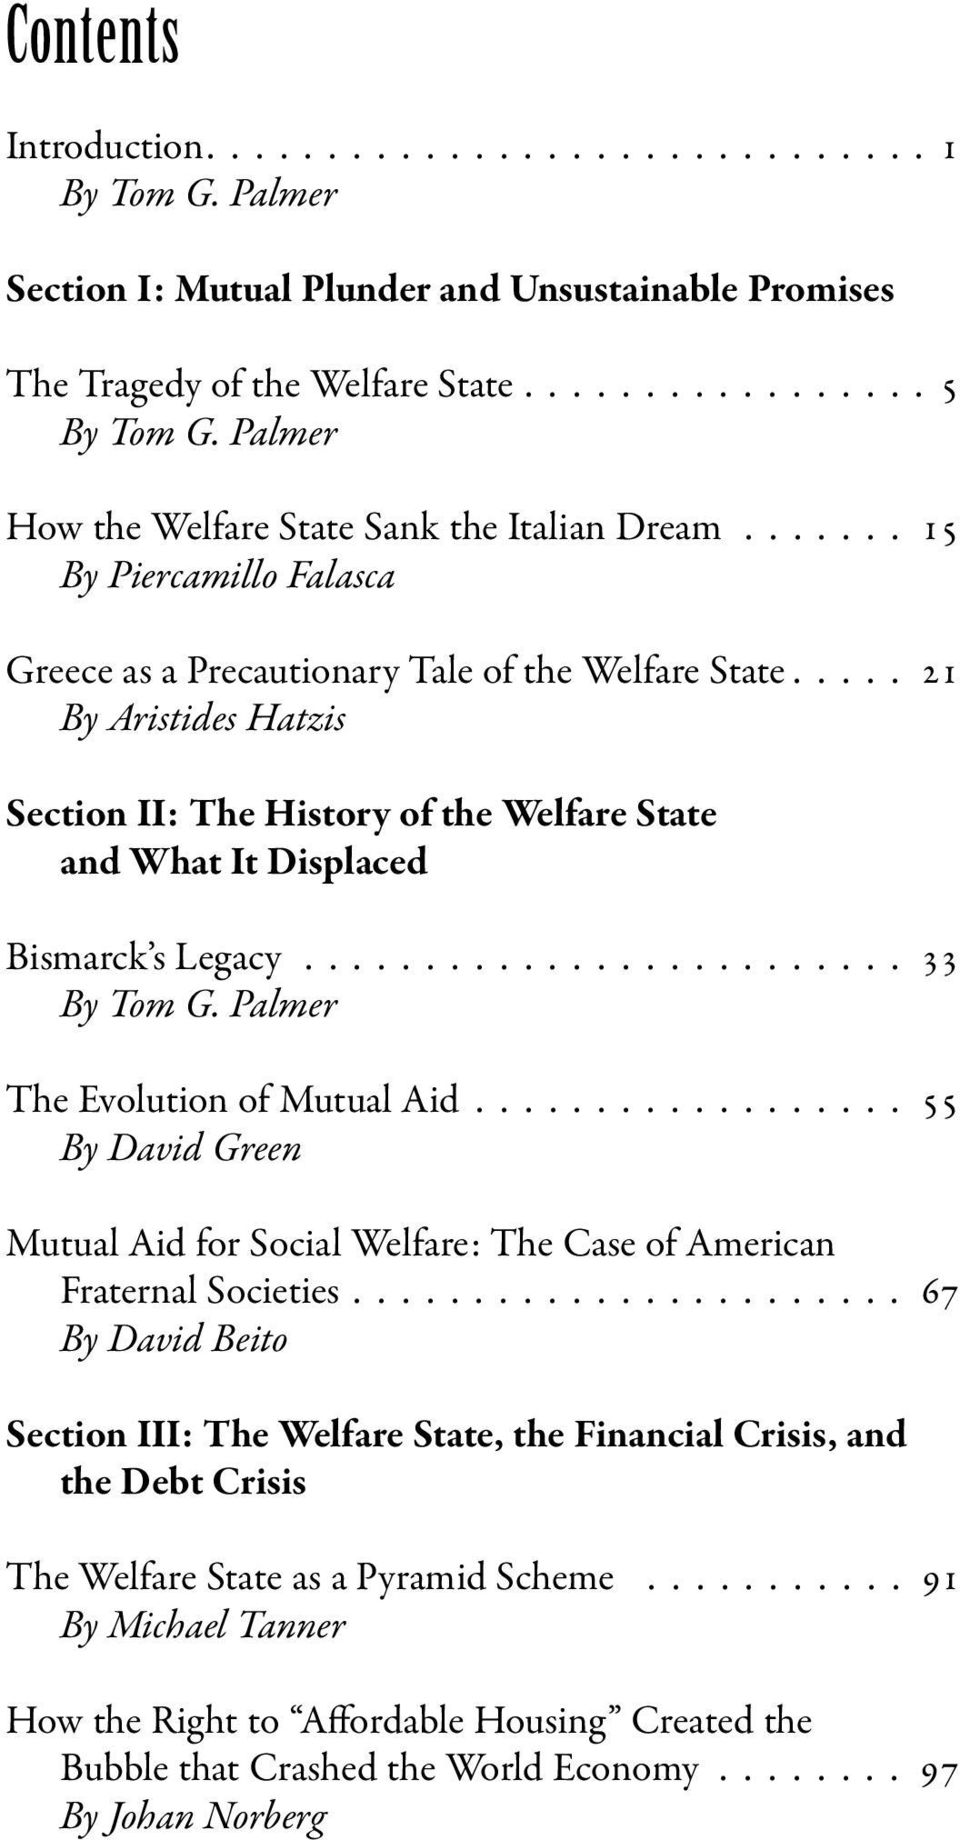 .... 21 By Aristides Hatzis Section II: The History of the Welfare State and What It Displaced Bismarck s Legacy......................... 33 By Tom G. Palmer The Evolution of Mutual Aid.